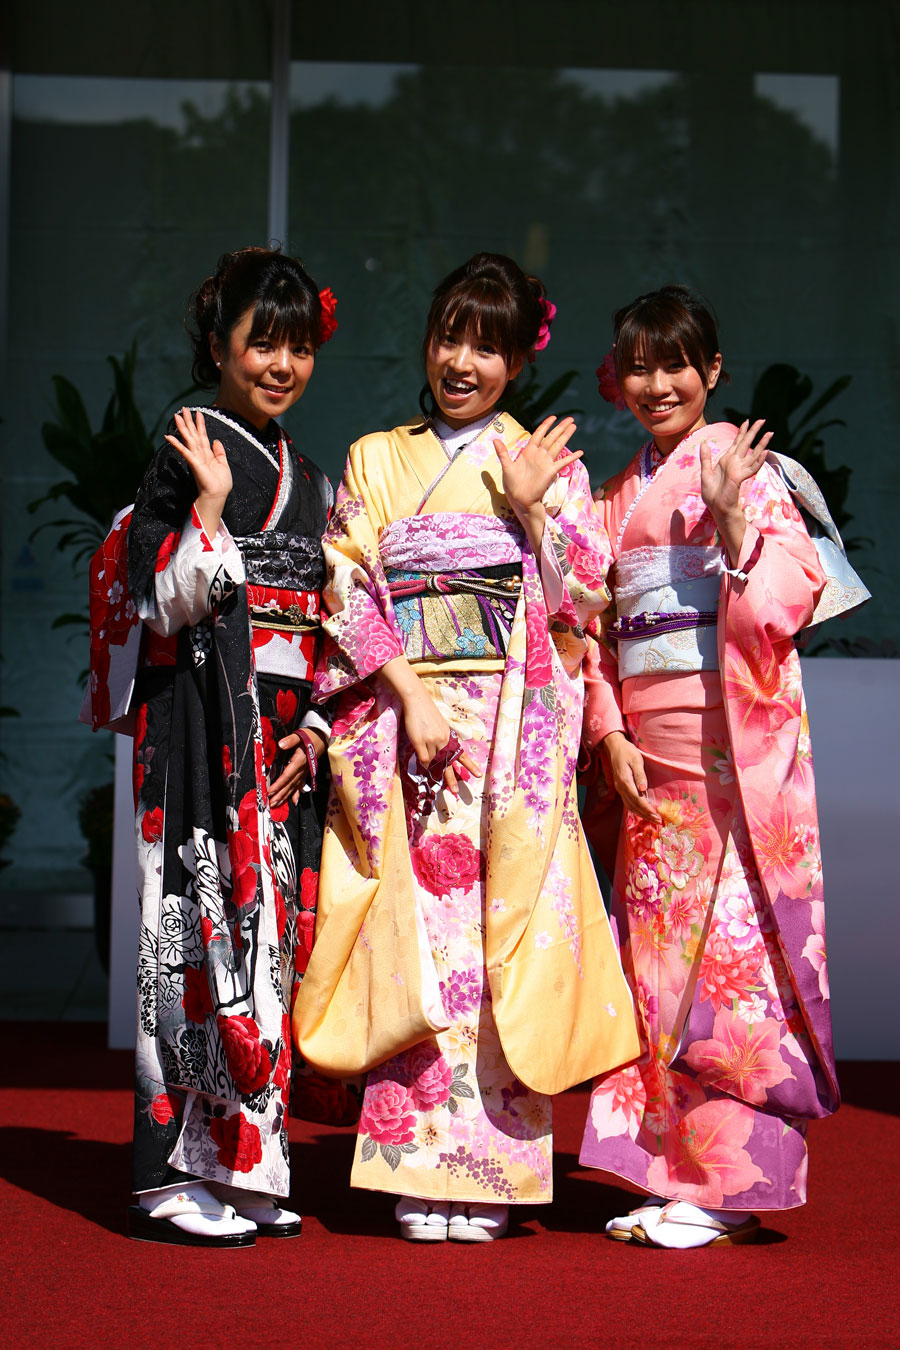 Girls in traditional dress in the paddock